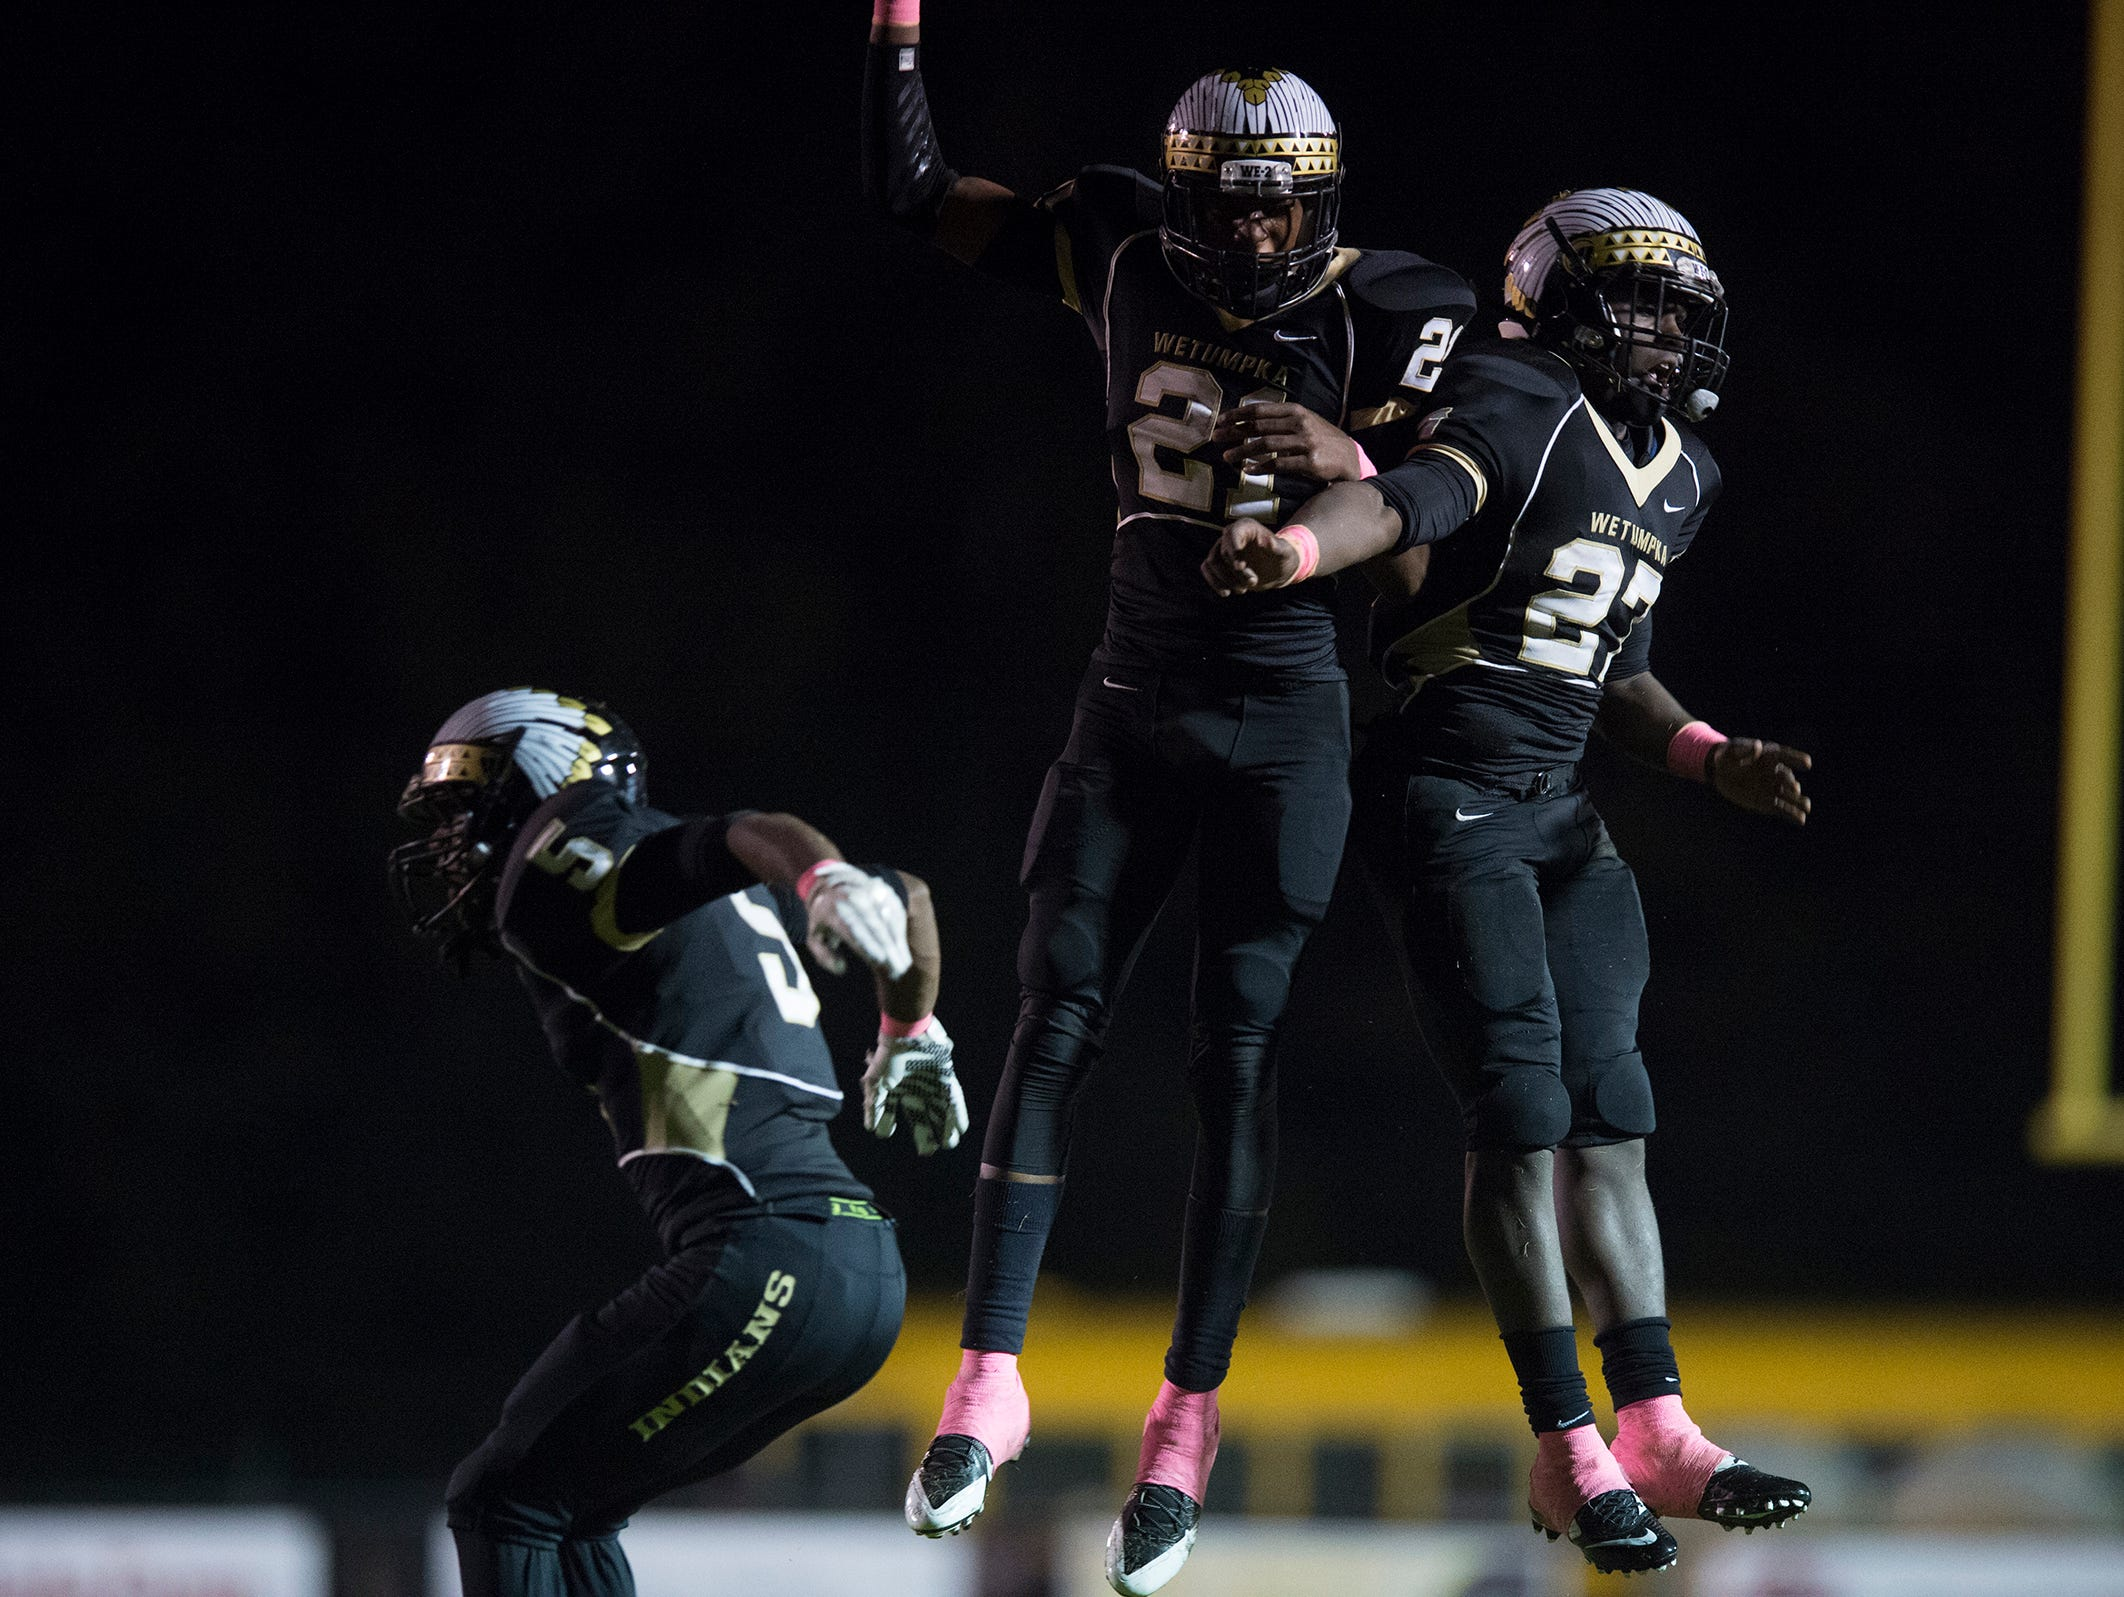 Wetumpka's Mack Caldwell (22) and Kavoskey Smoke celebrate after Stanhope failed to convert on a two point conversion with 11 seconds left in the game leaving Wetumpka with a 14-13 lead on Friday, Oct. 2, 2015, in Wetumpka, Ala. Wetumpka defeated Stanhope-Elmore 14-13 after a failed two point conversion.